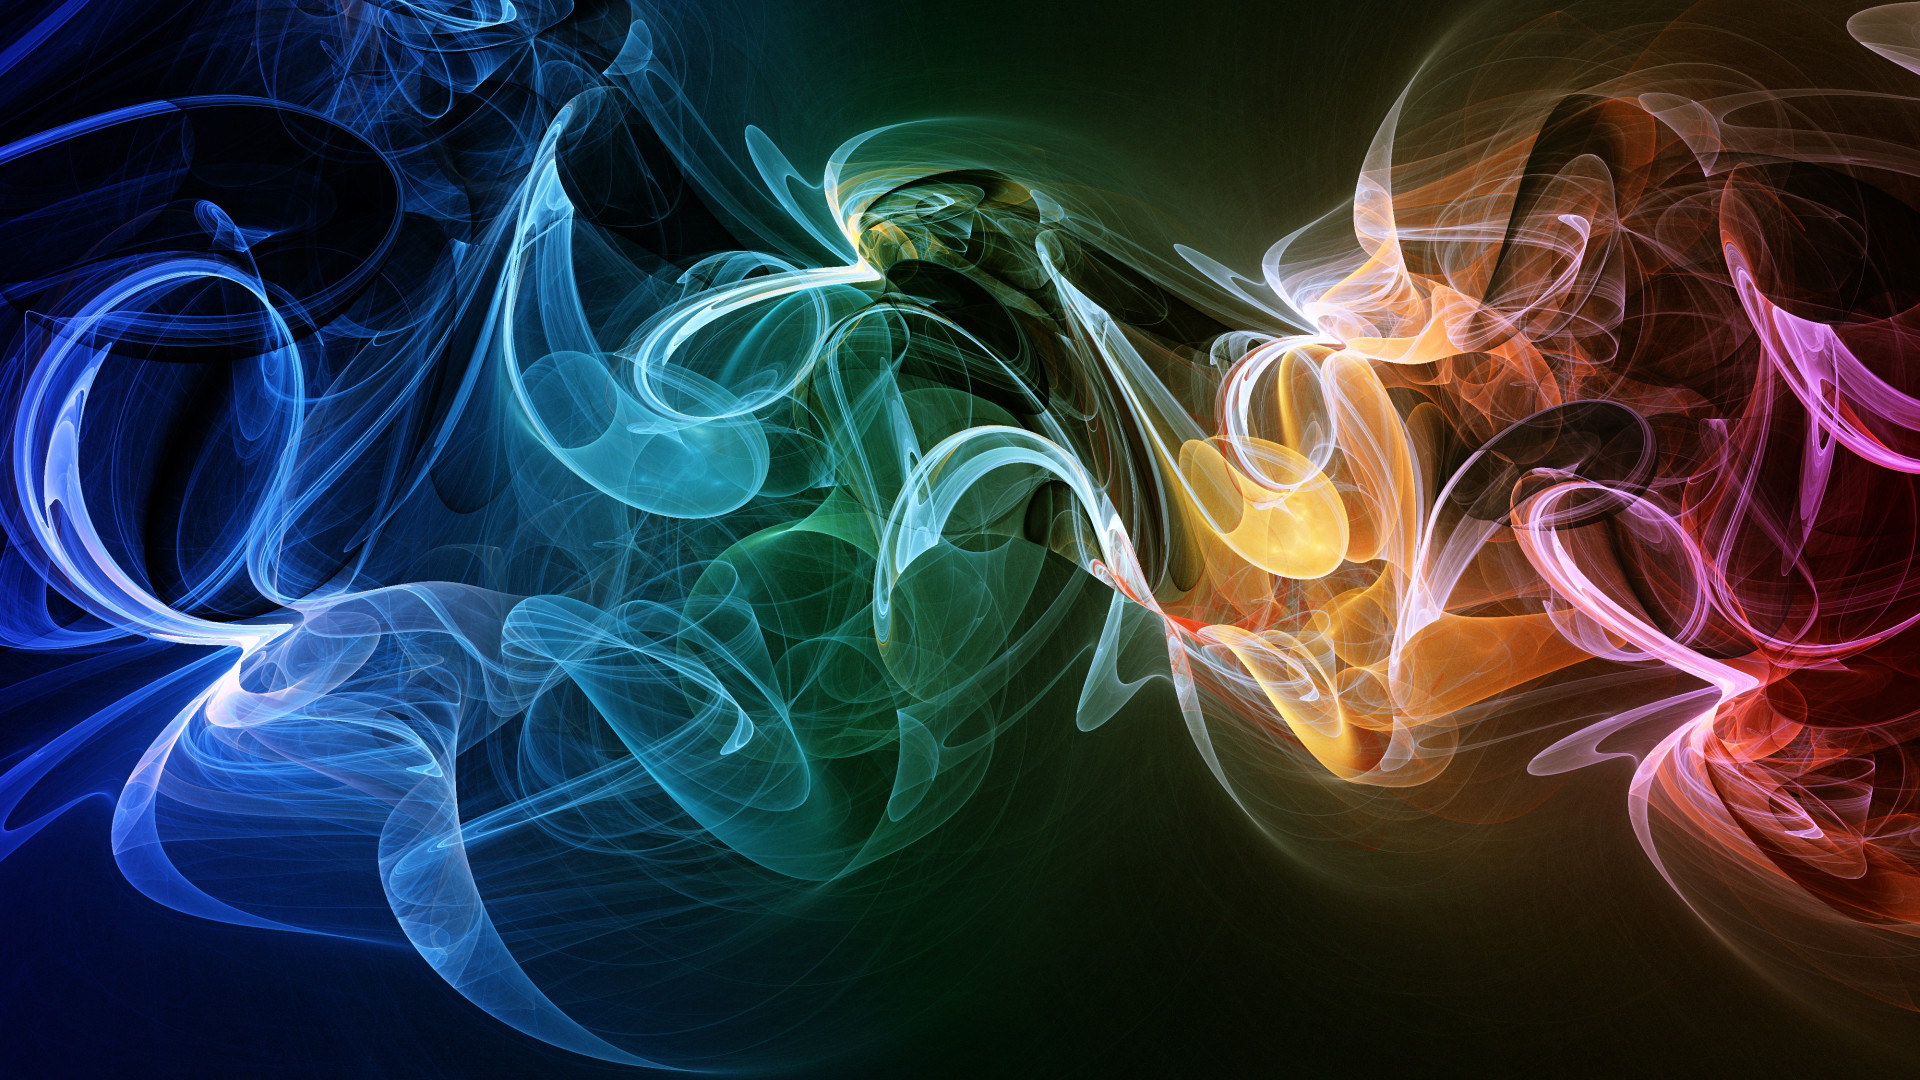 … Page 9 Abstract Wallpaper 1080p .